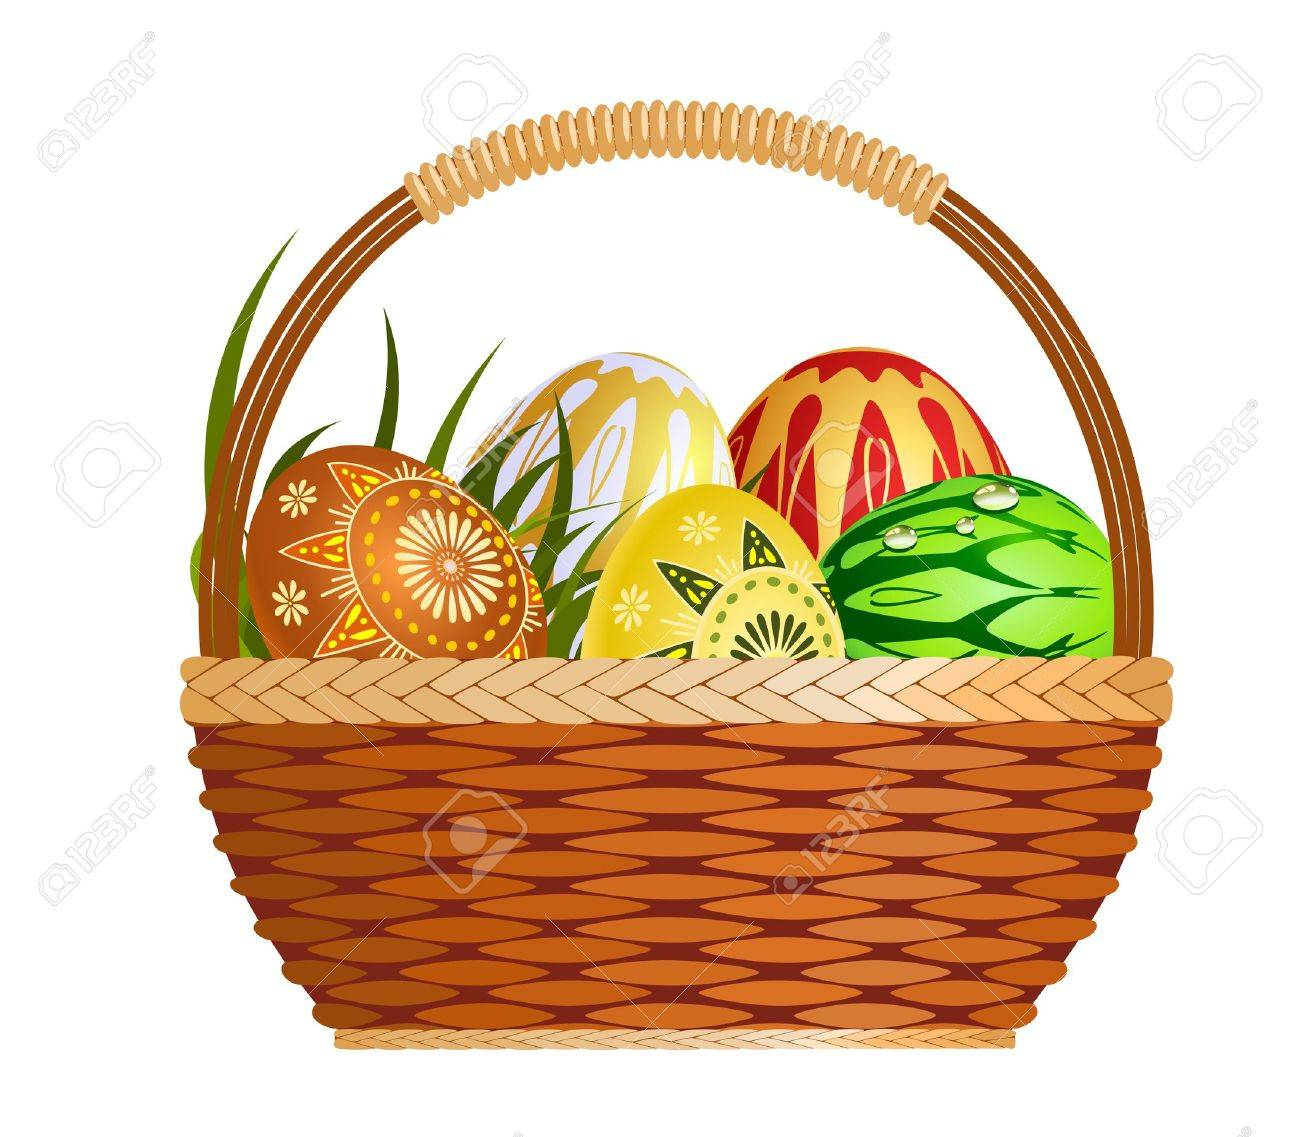 Basket with easter eggs Stock Vector - 9828557